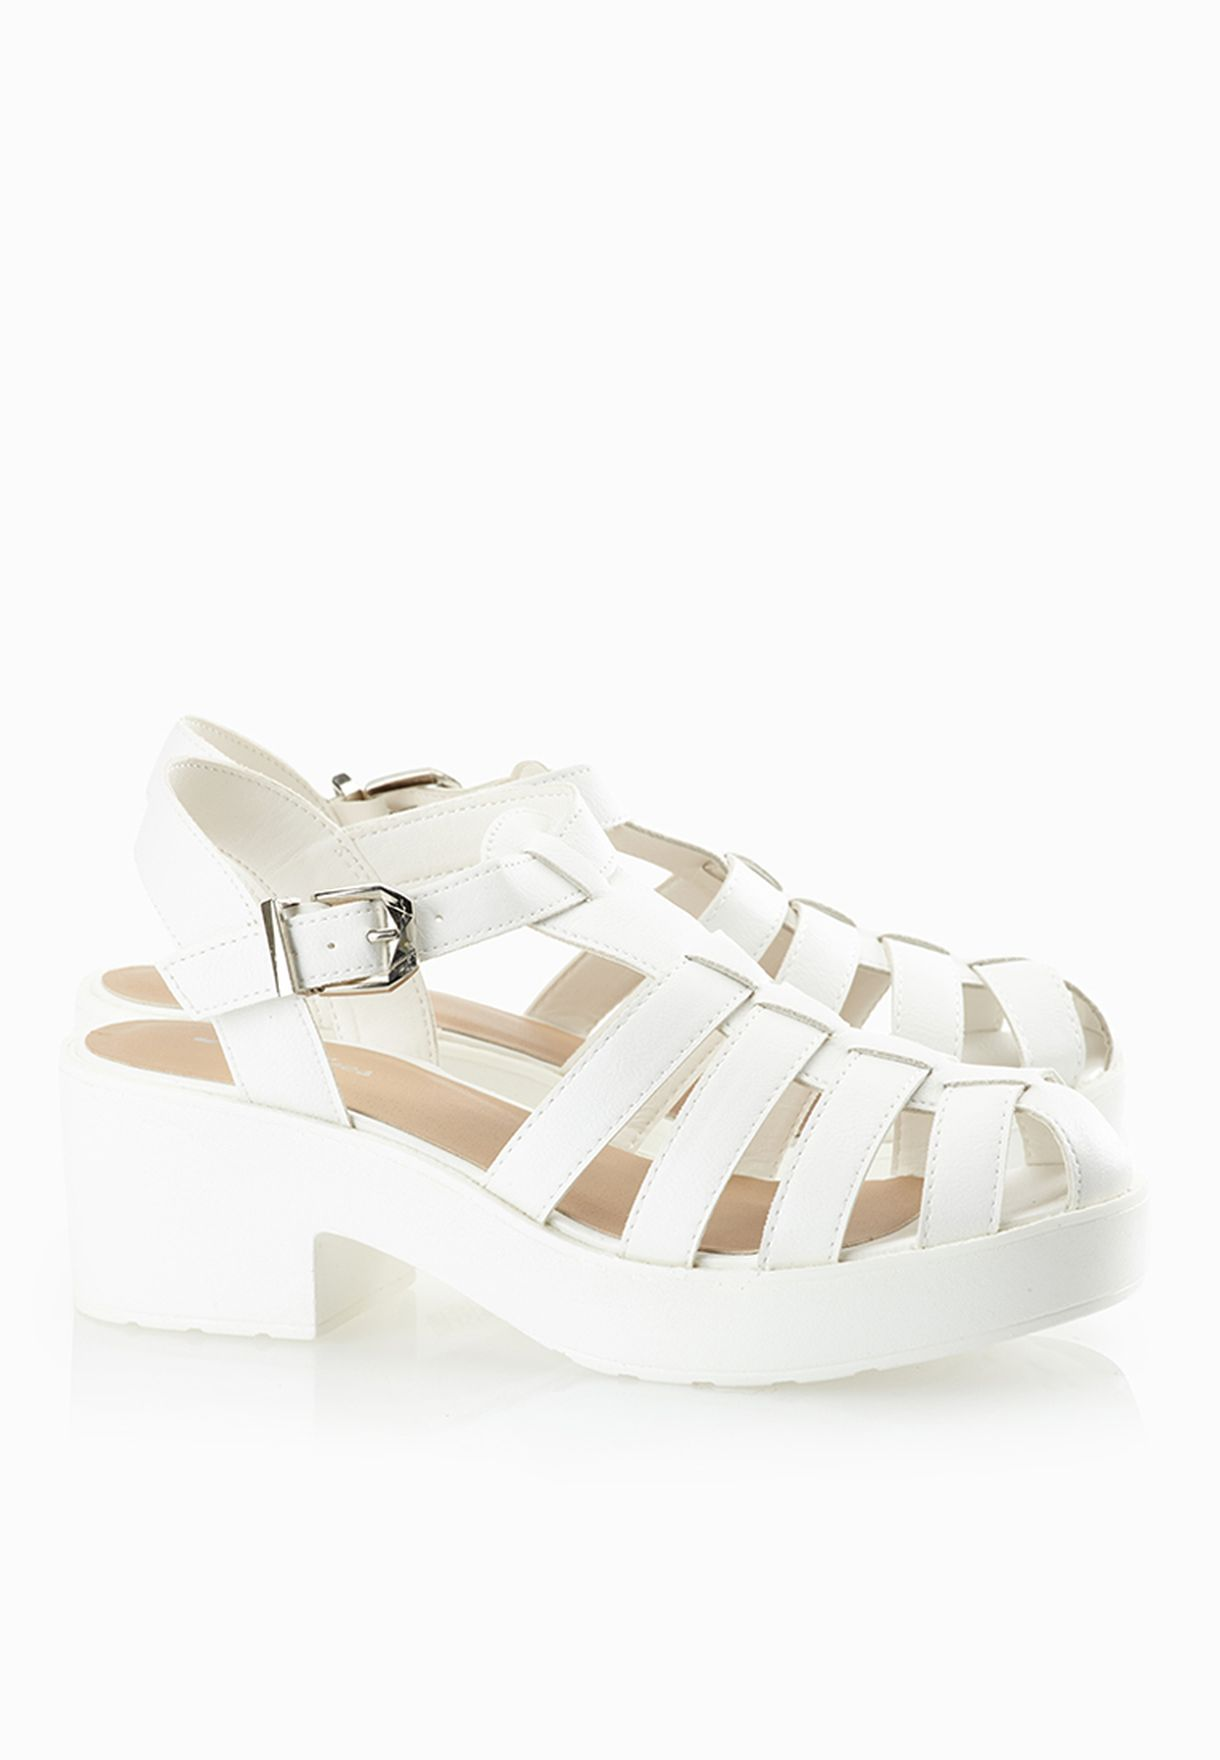 770857d7ca92 Shop Style shoes white Strappy Jelly Sandals for Women in UAE ...